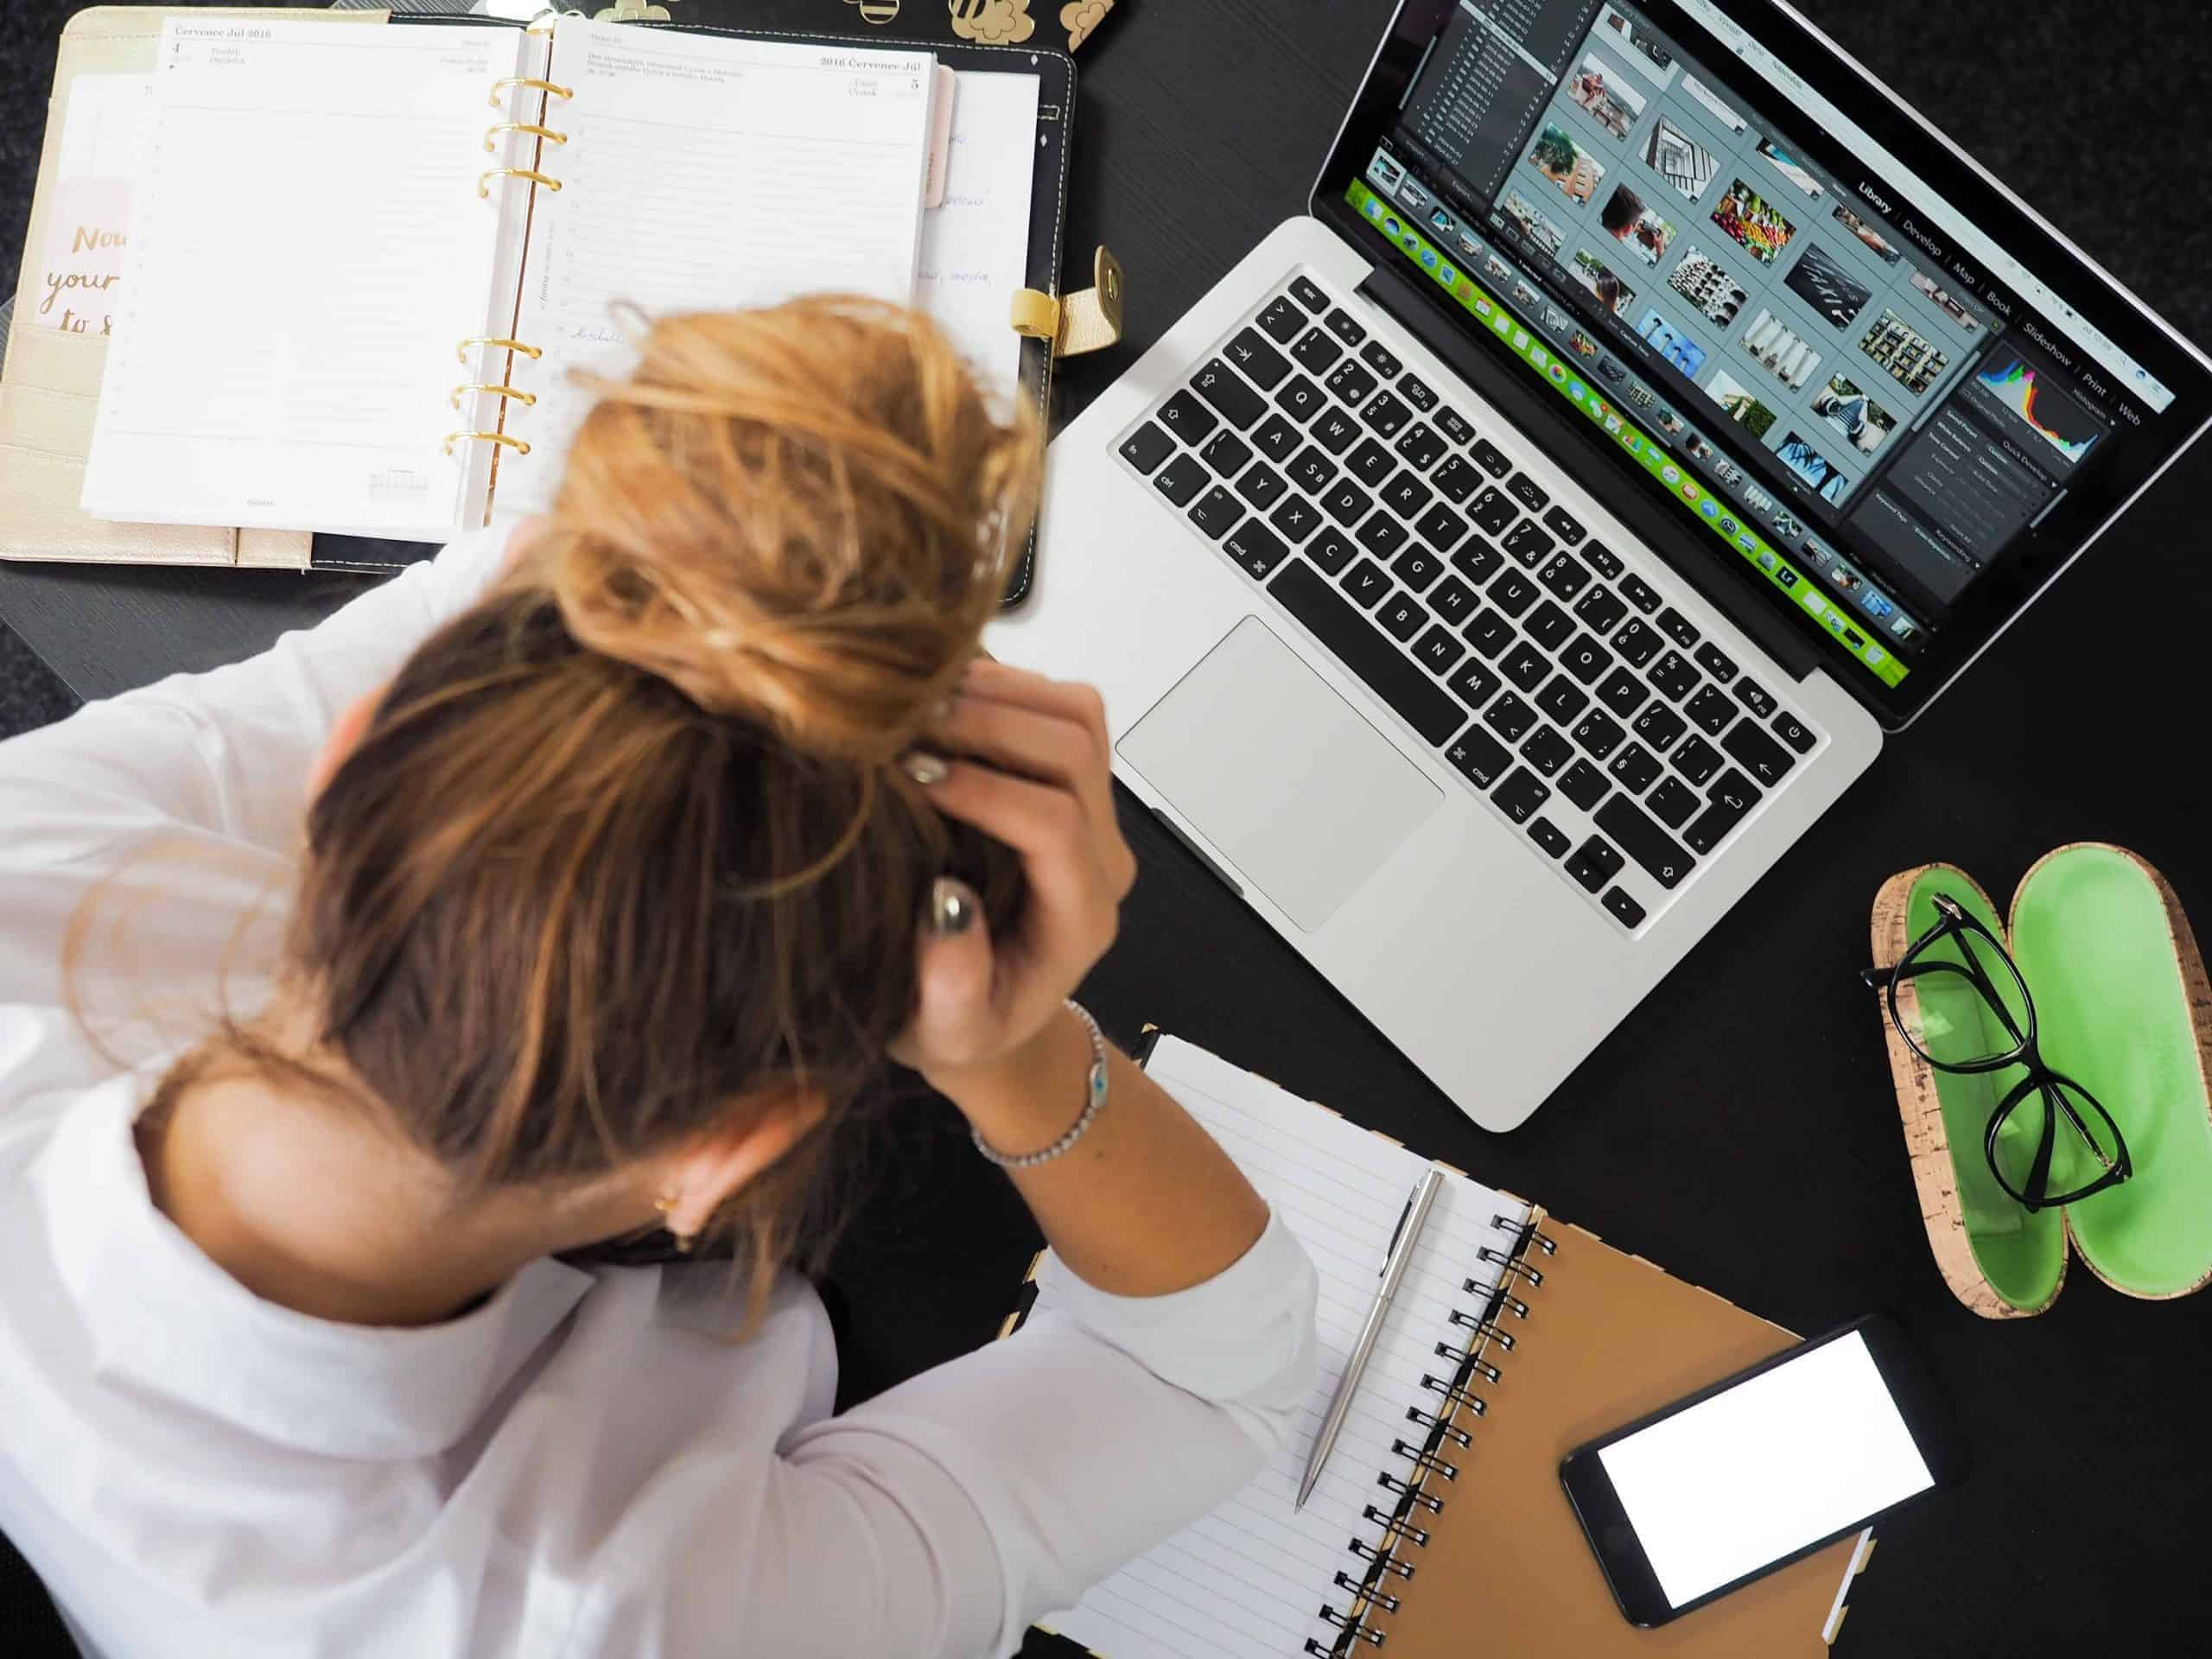 bcd frustrated solopreneur working scaled